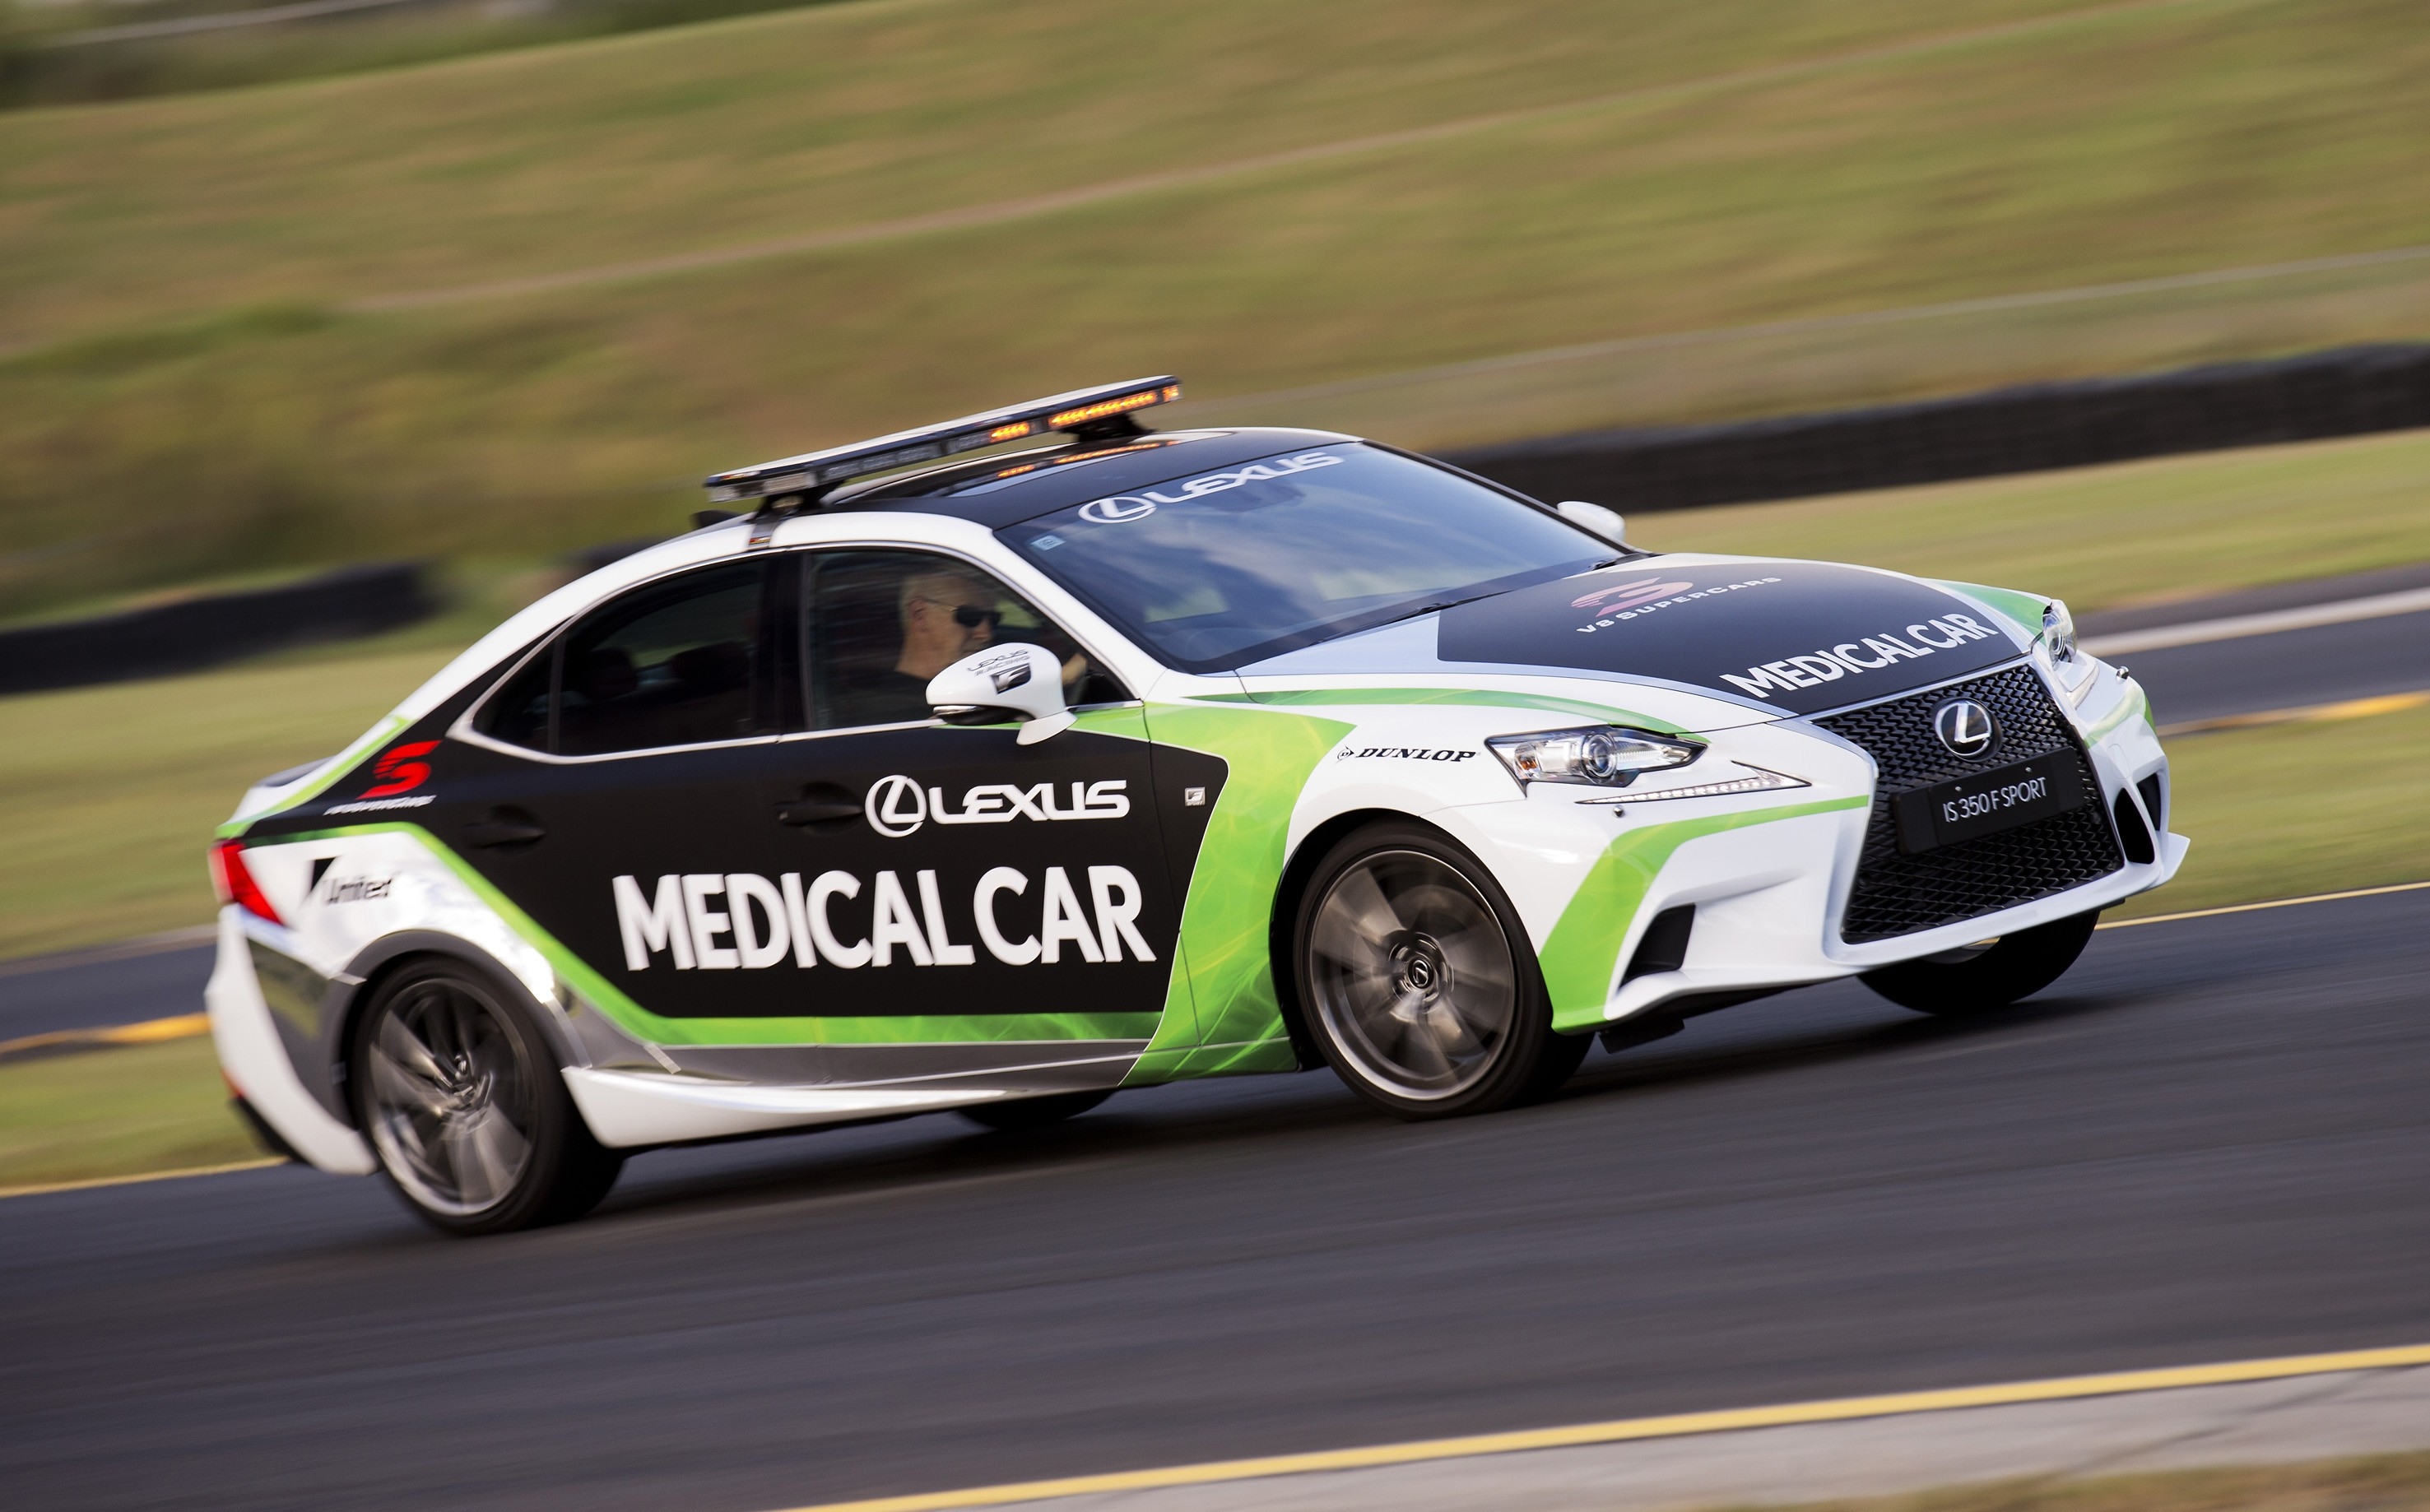 Lexus Joins Australian V8 Supercars Championship, No Racing Though ...